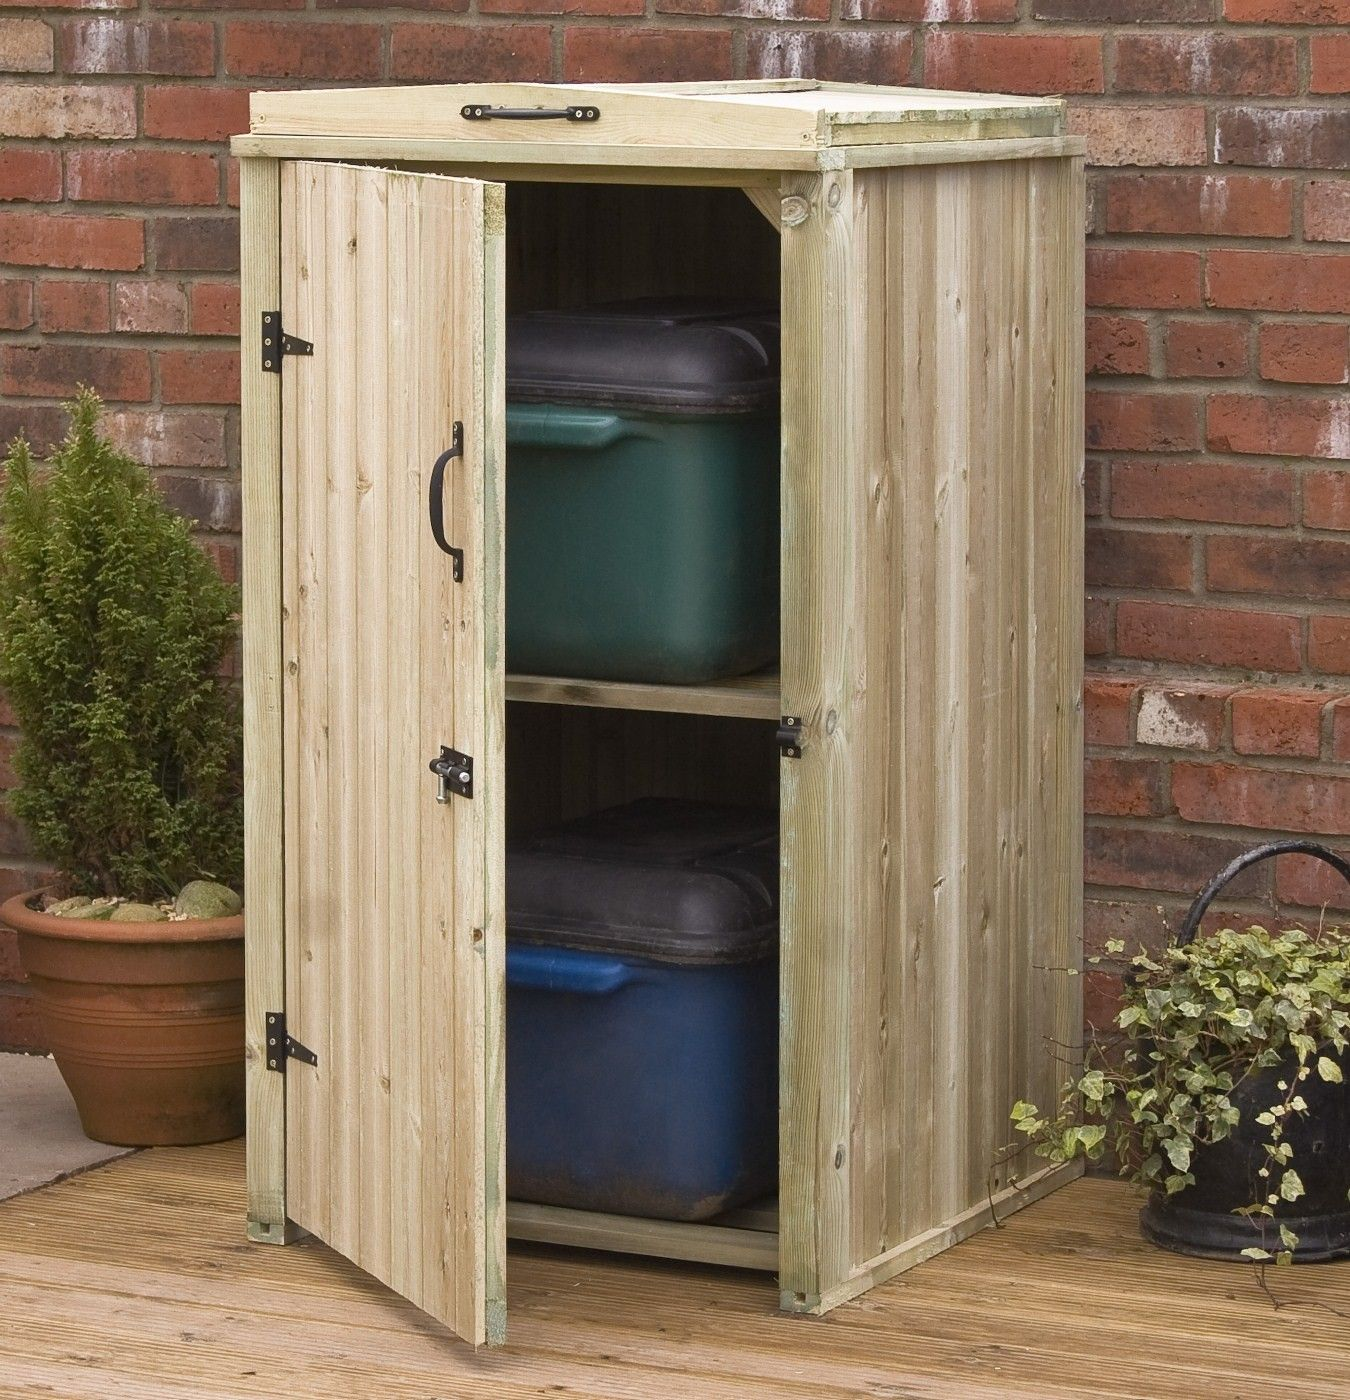 Outdoor Wood Storage Cabinet : outdoor patio storage cabinet - thejasonspencertrust.org